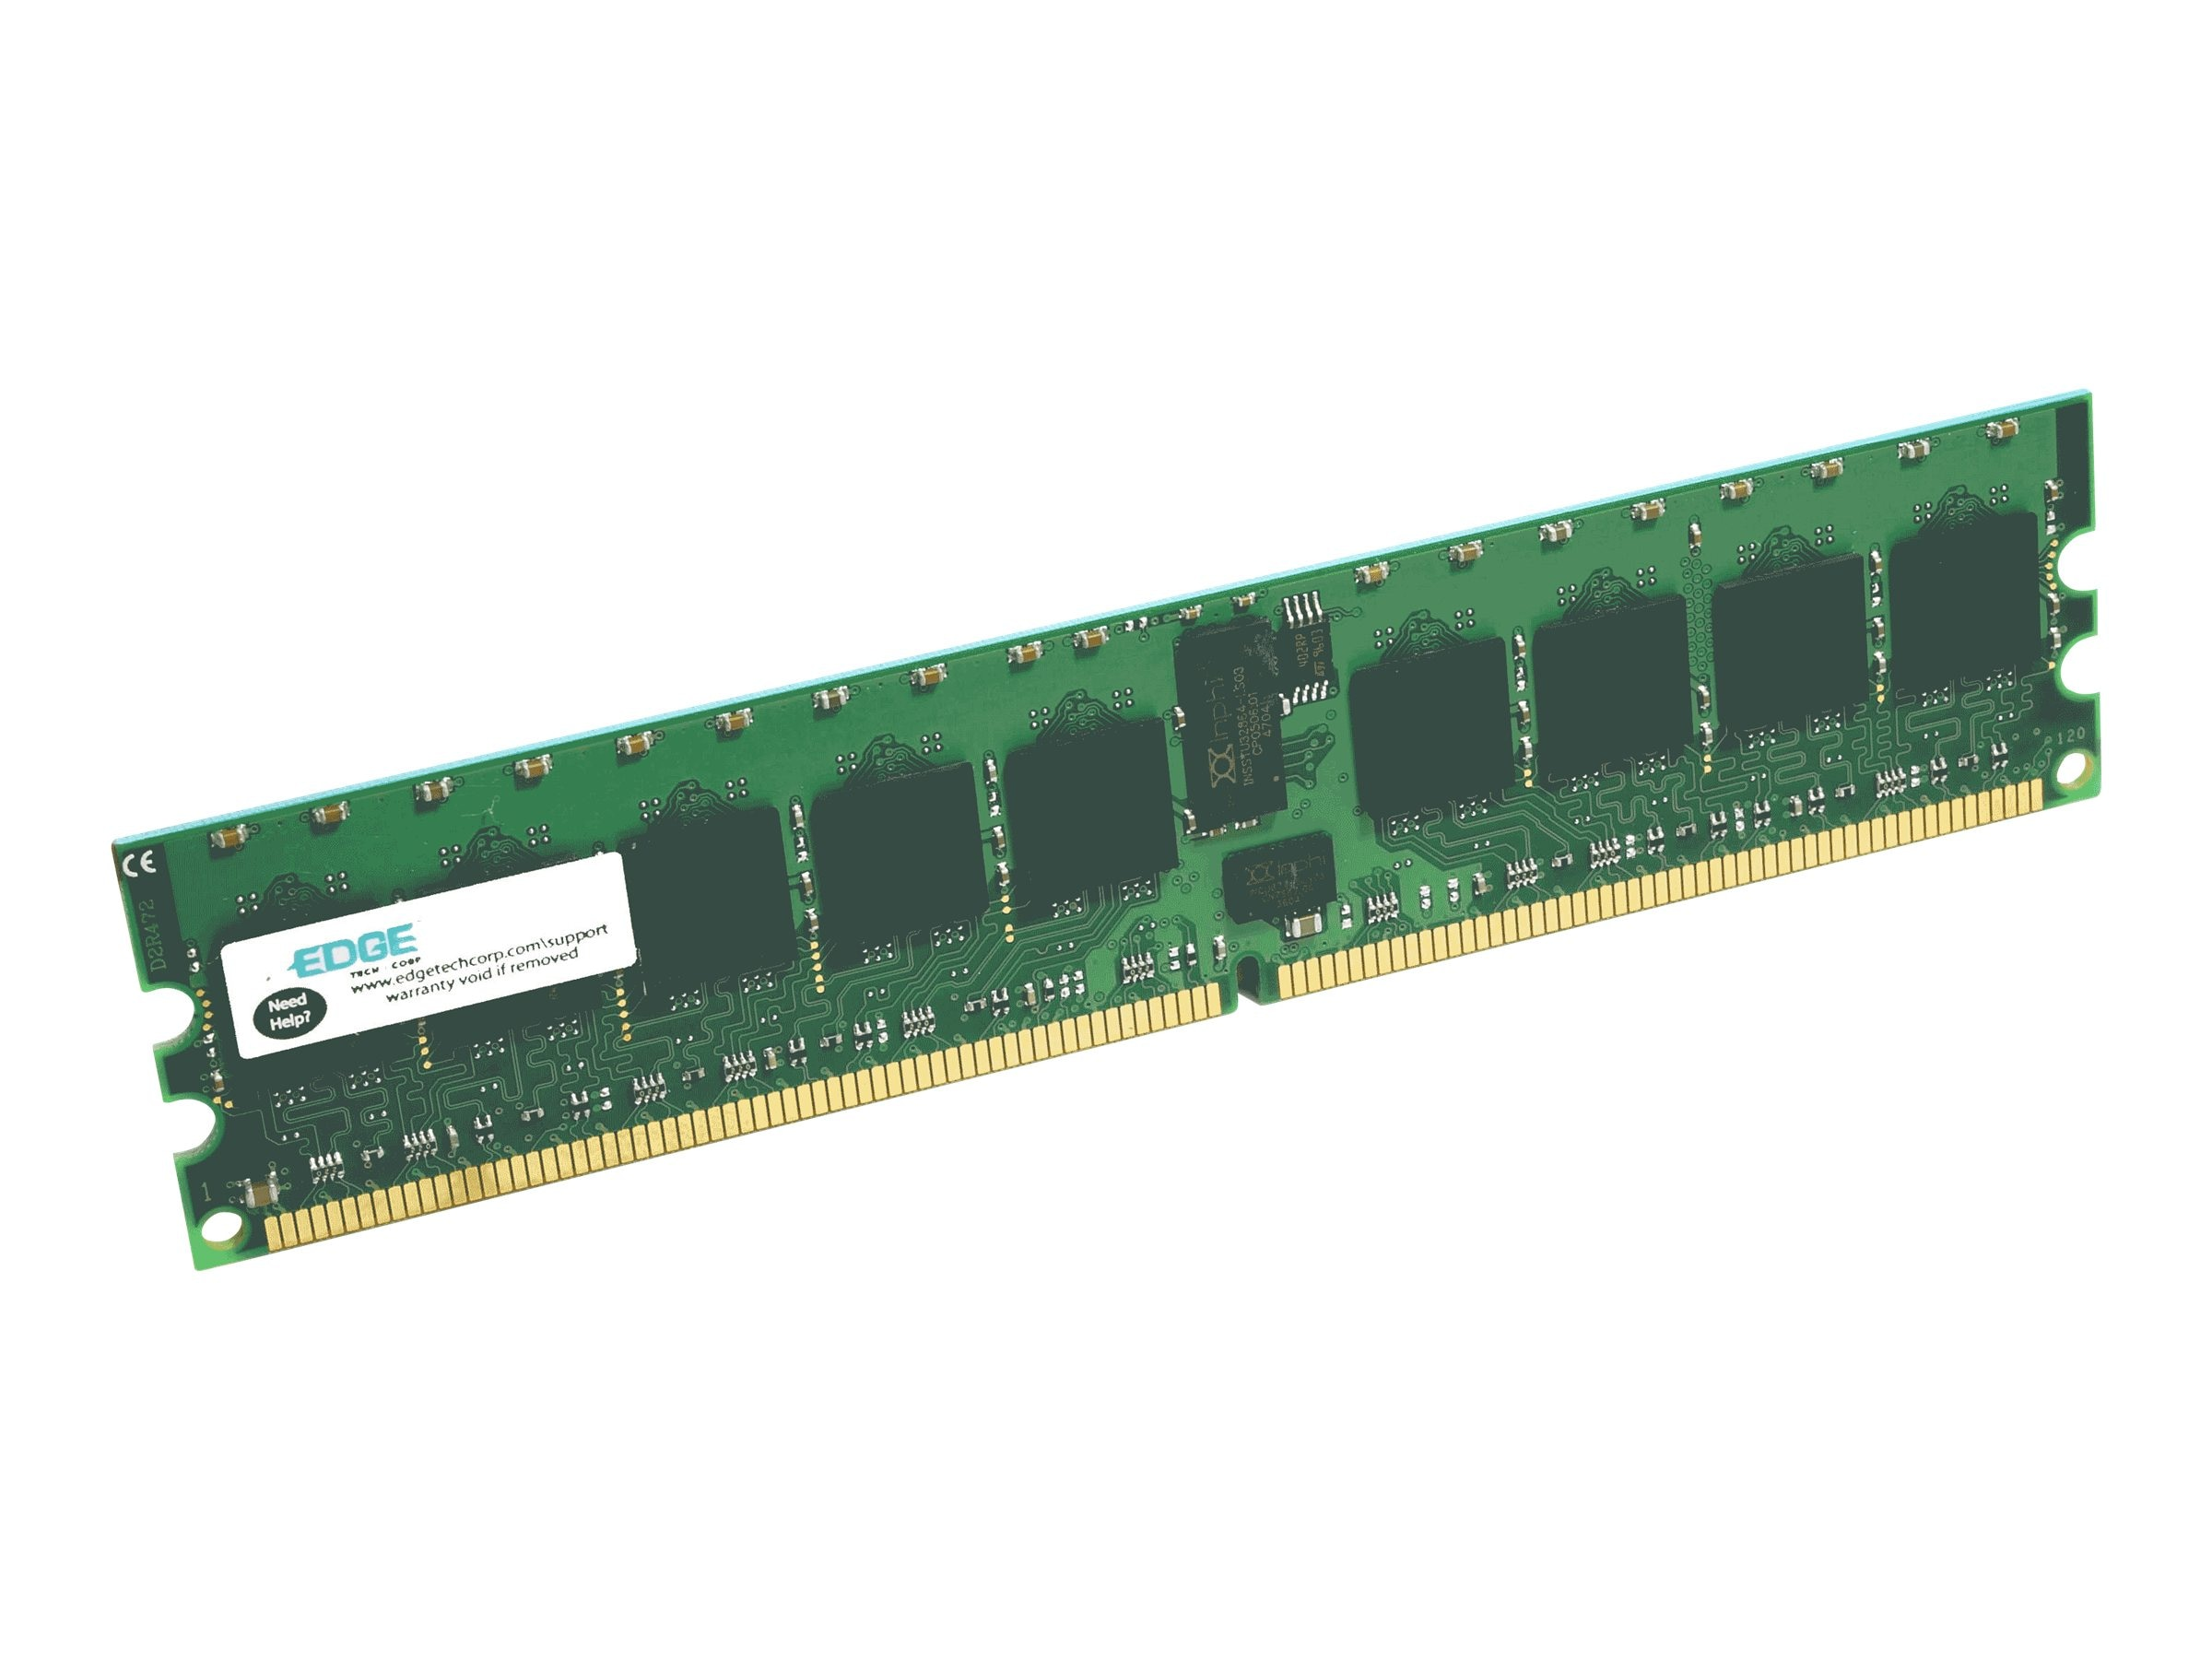 Edge 4GB PC3-10600 240-pin DDR3 SDRAM UDIMM